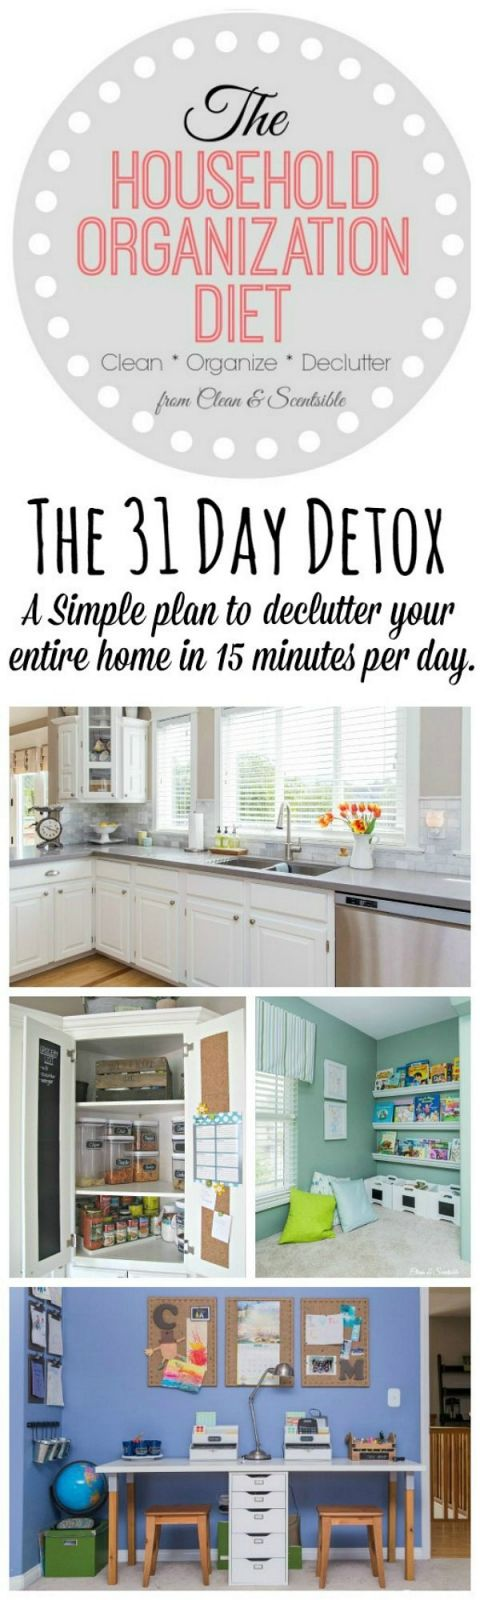 10 ideas about declutter your home on pinterest for Declutter house plan